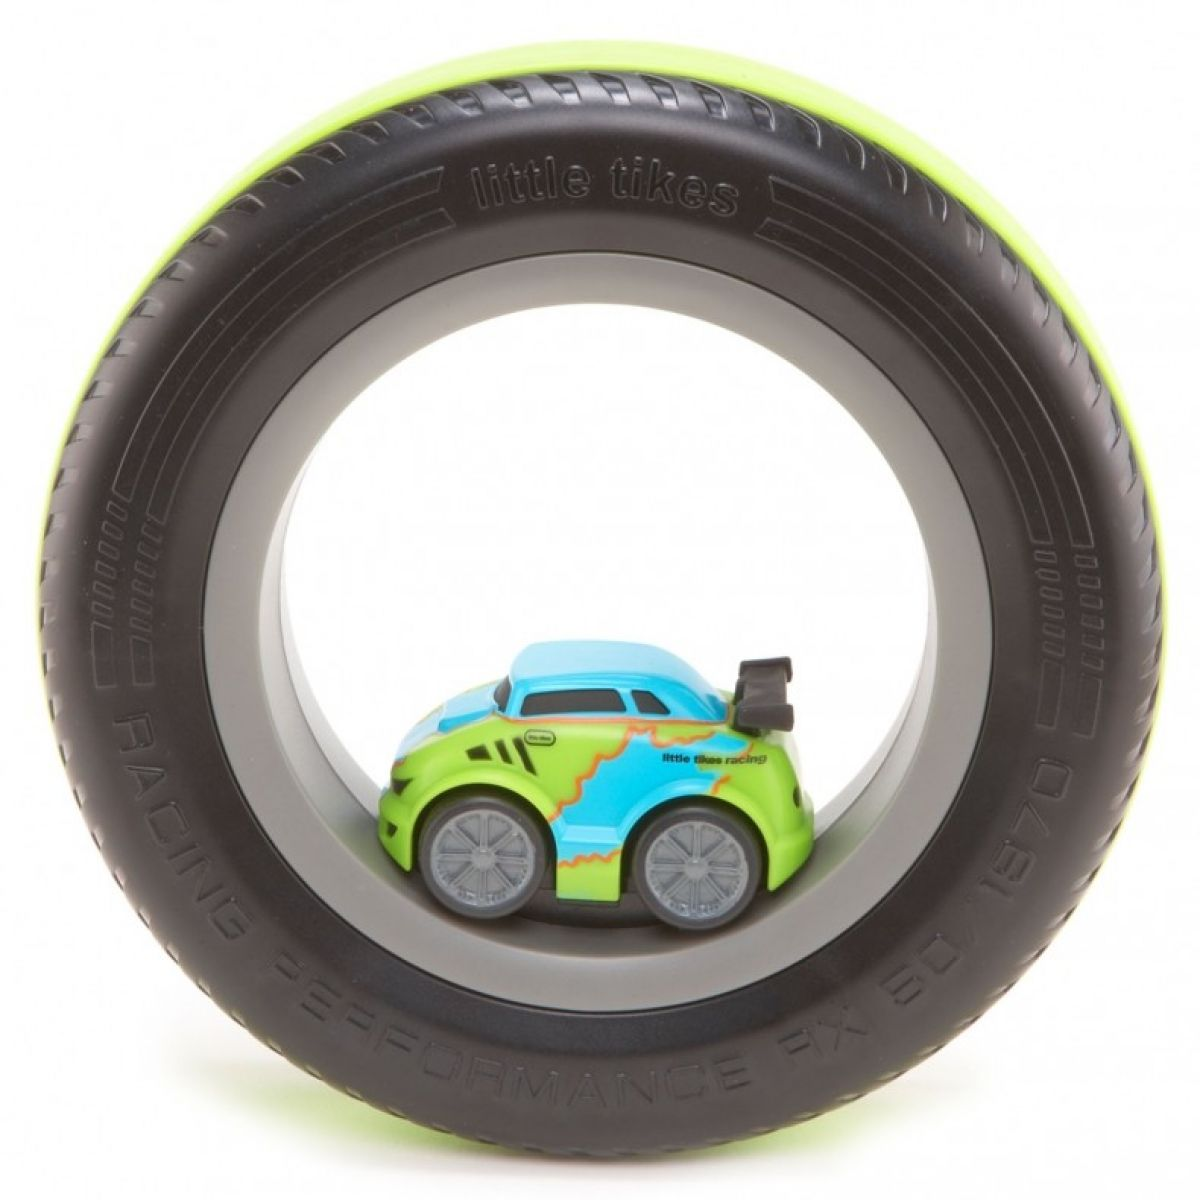 Little Tikes Tire Racers Modrozelené auto